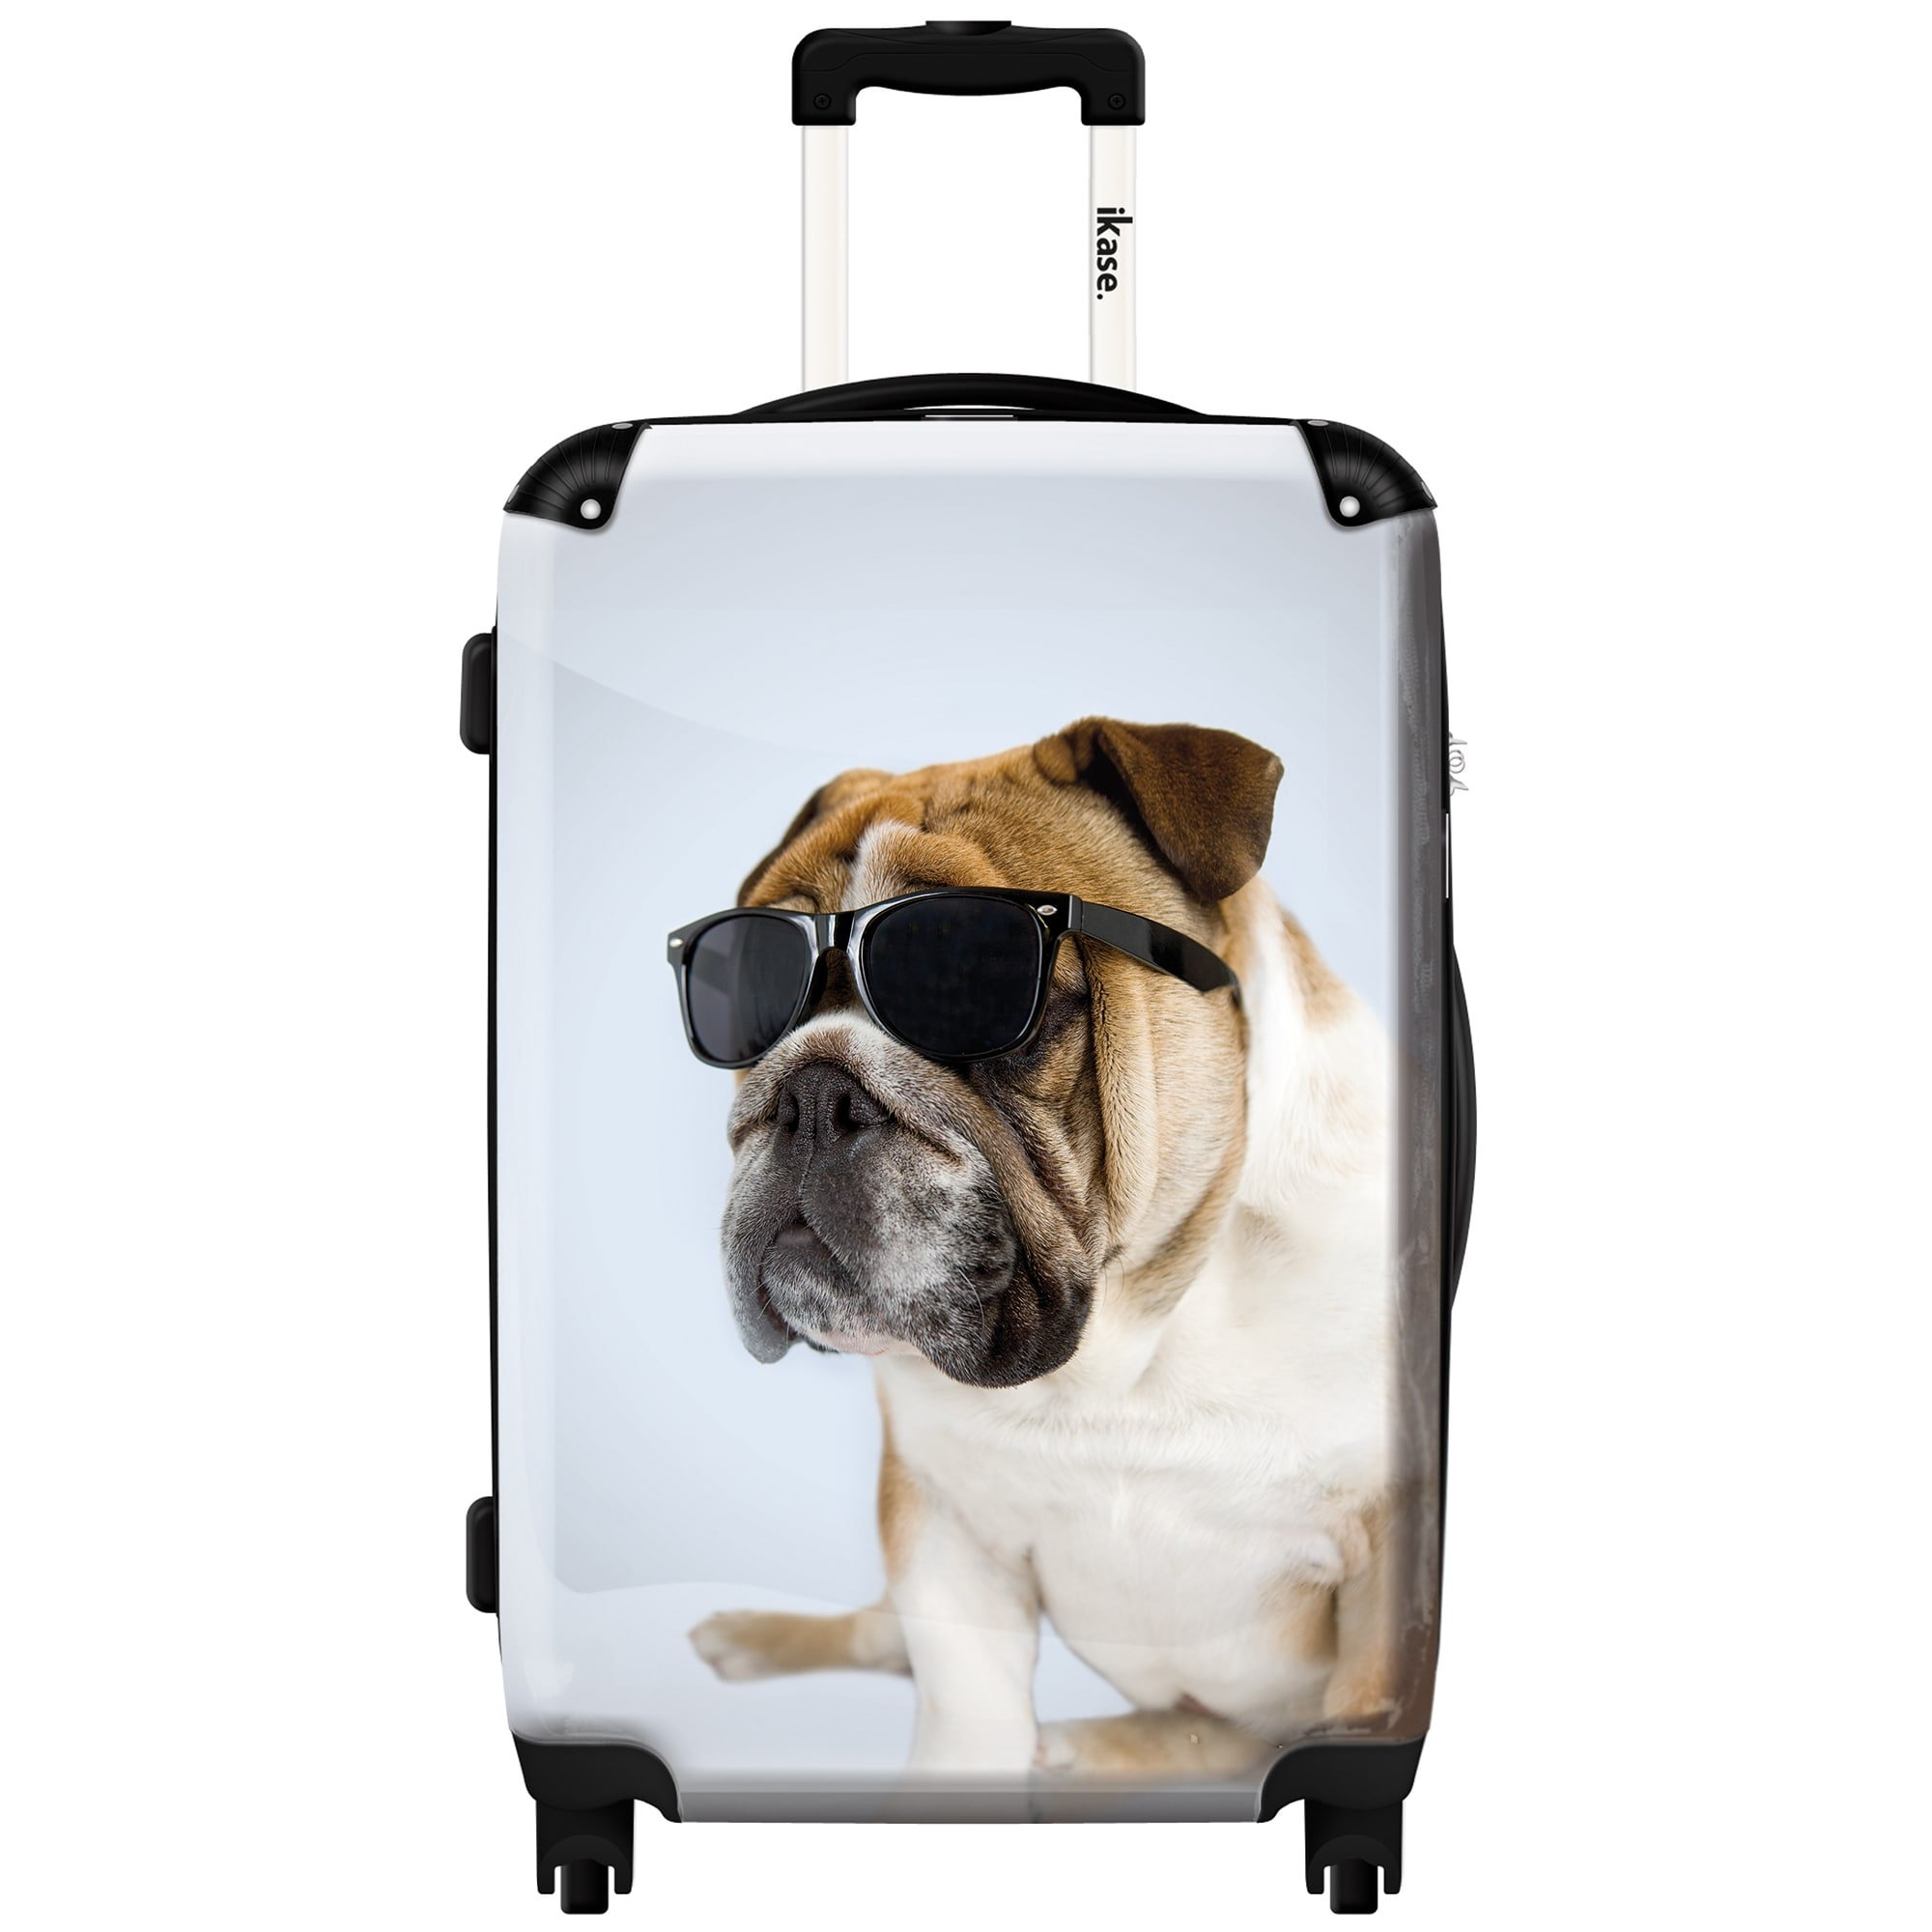 iKase 'Dog with a Black Glasses' ,Check-in 24-inch .Hardside Spinner Luggage by iKase®